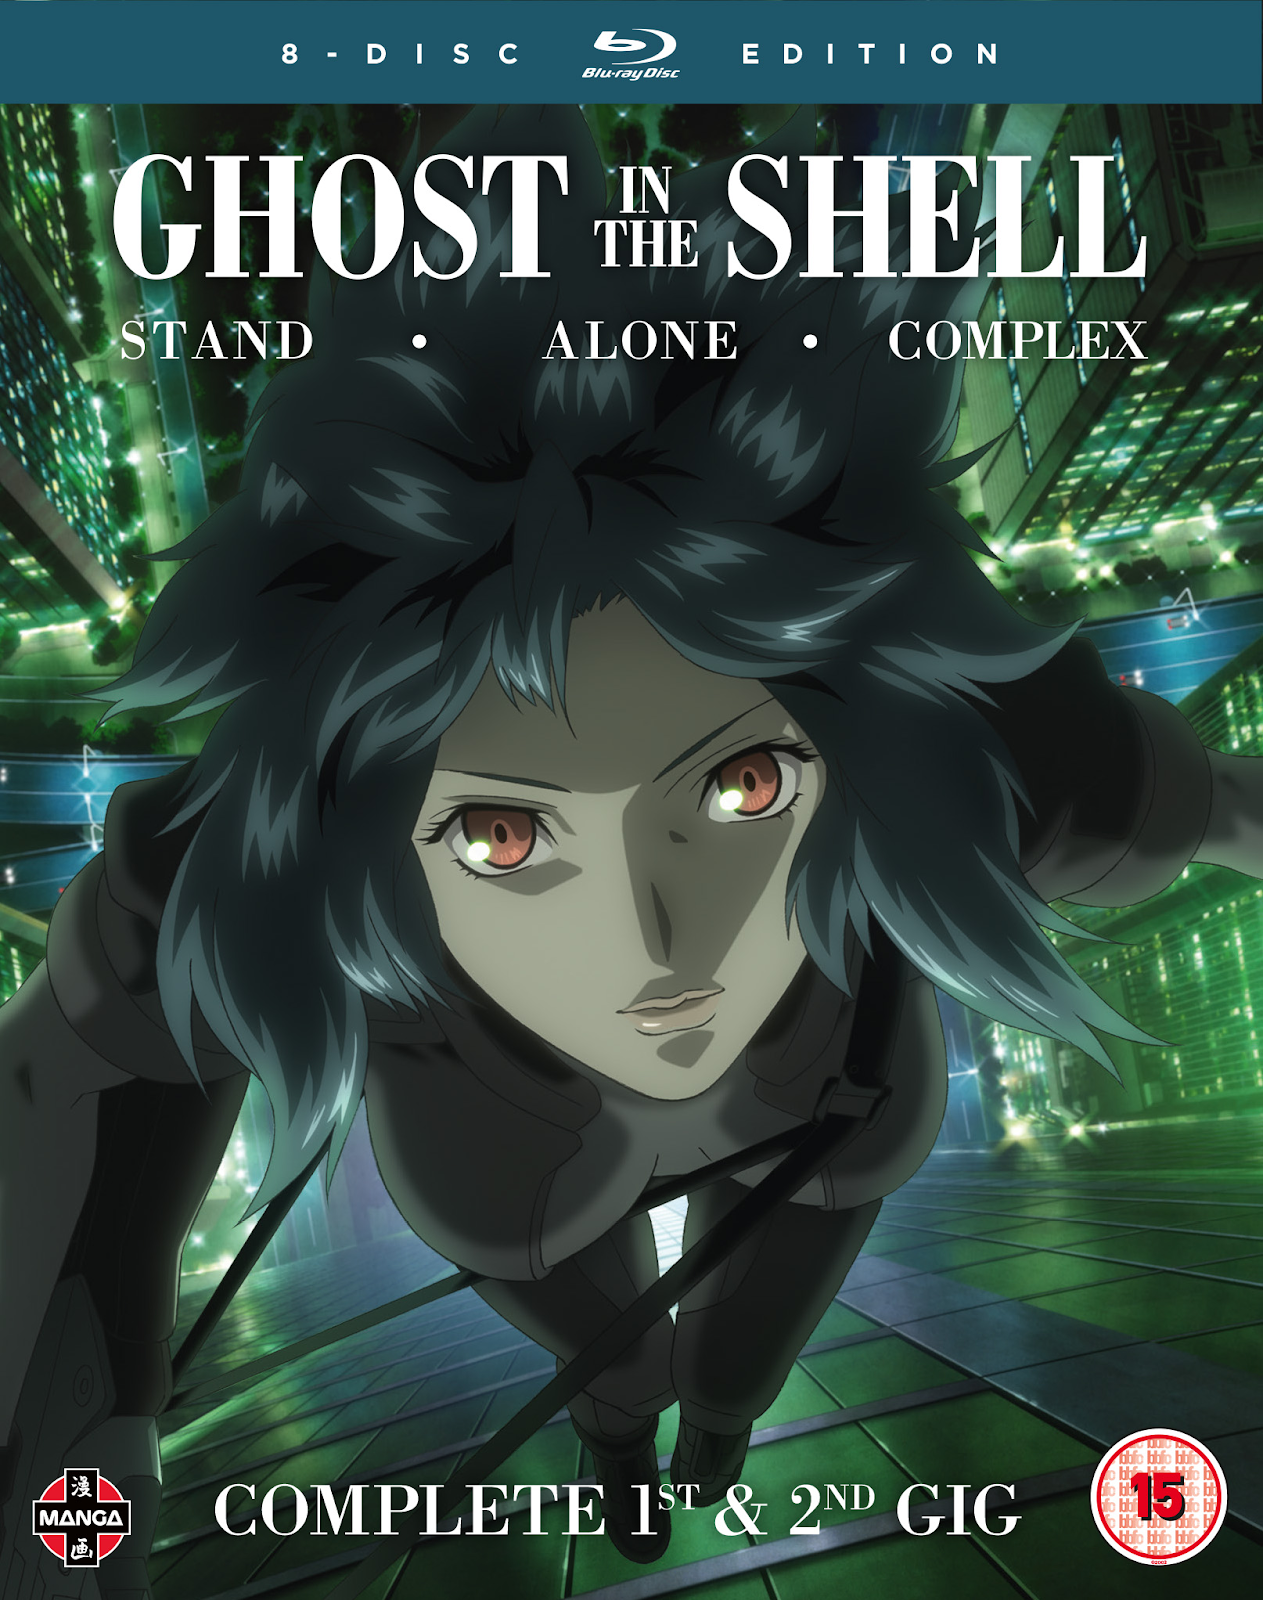 Manga Uk Announce Ghost In The Shell Stand Alone Complex Standard Release Afa Animation For Adults Animation News Reviews Articles Podcasts And More